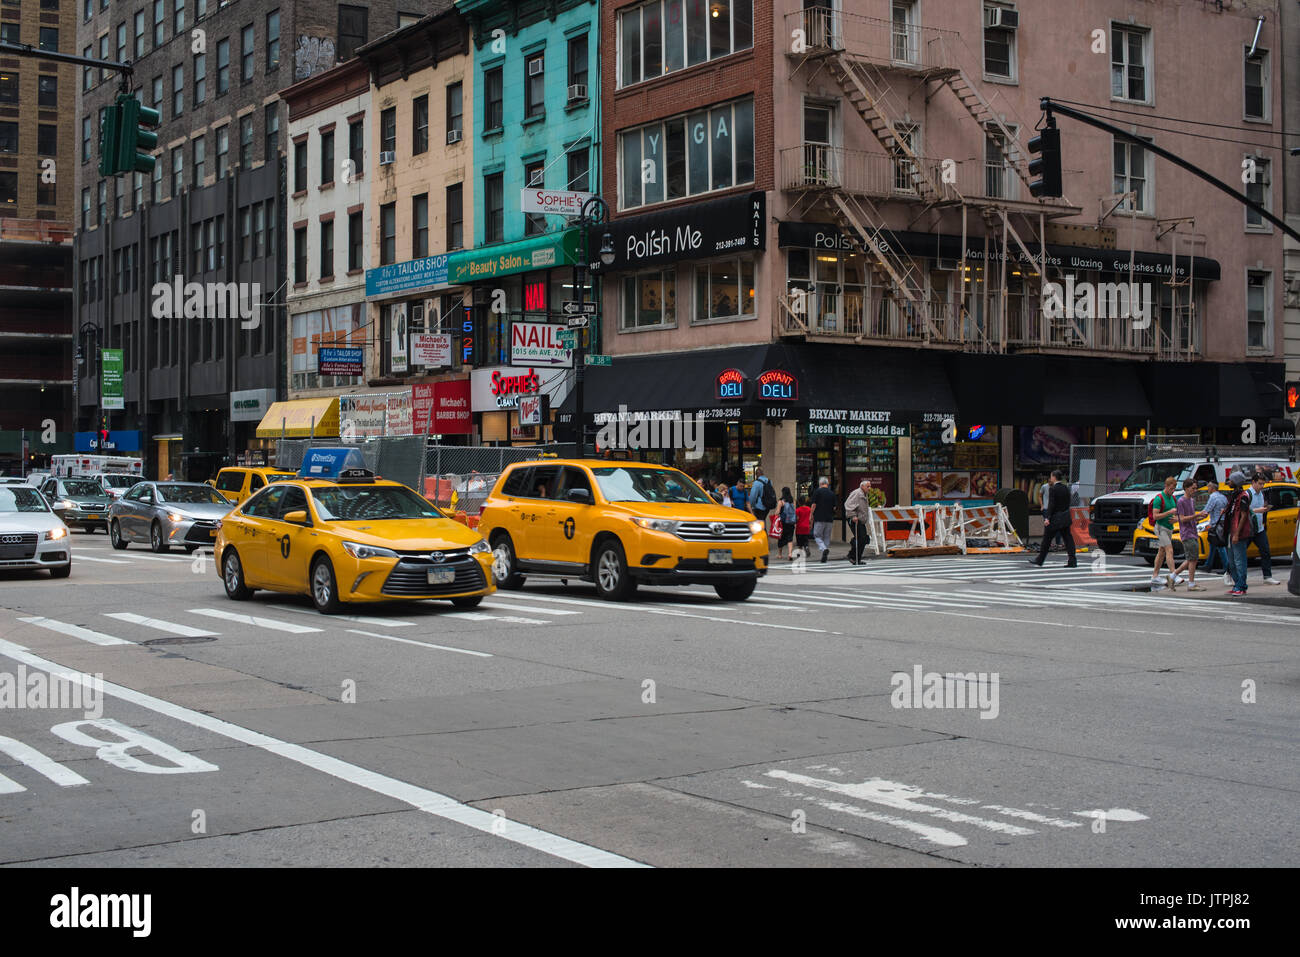 Two yellow cabs lead traffic on 6th Avenue in New York City. Editorial Use Only - Stock Image